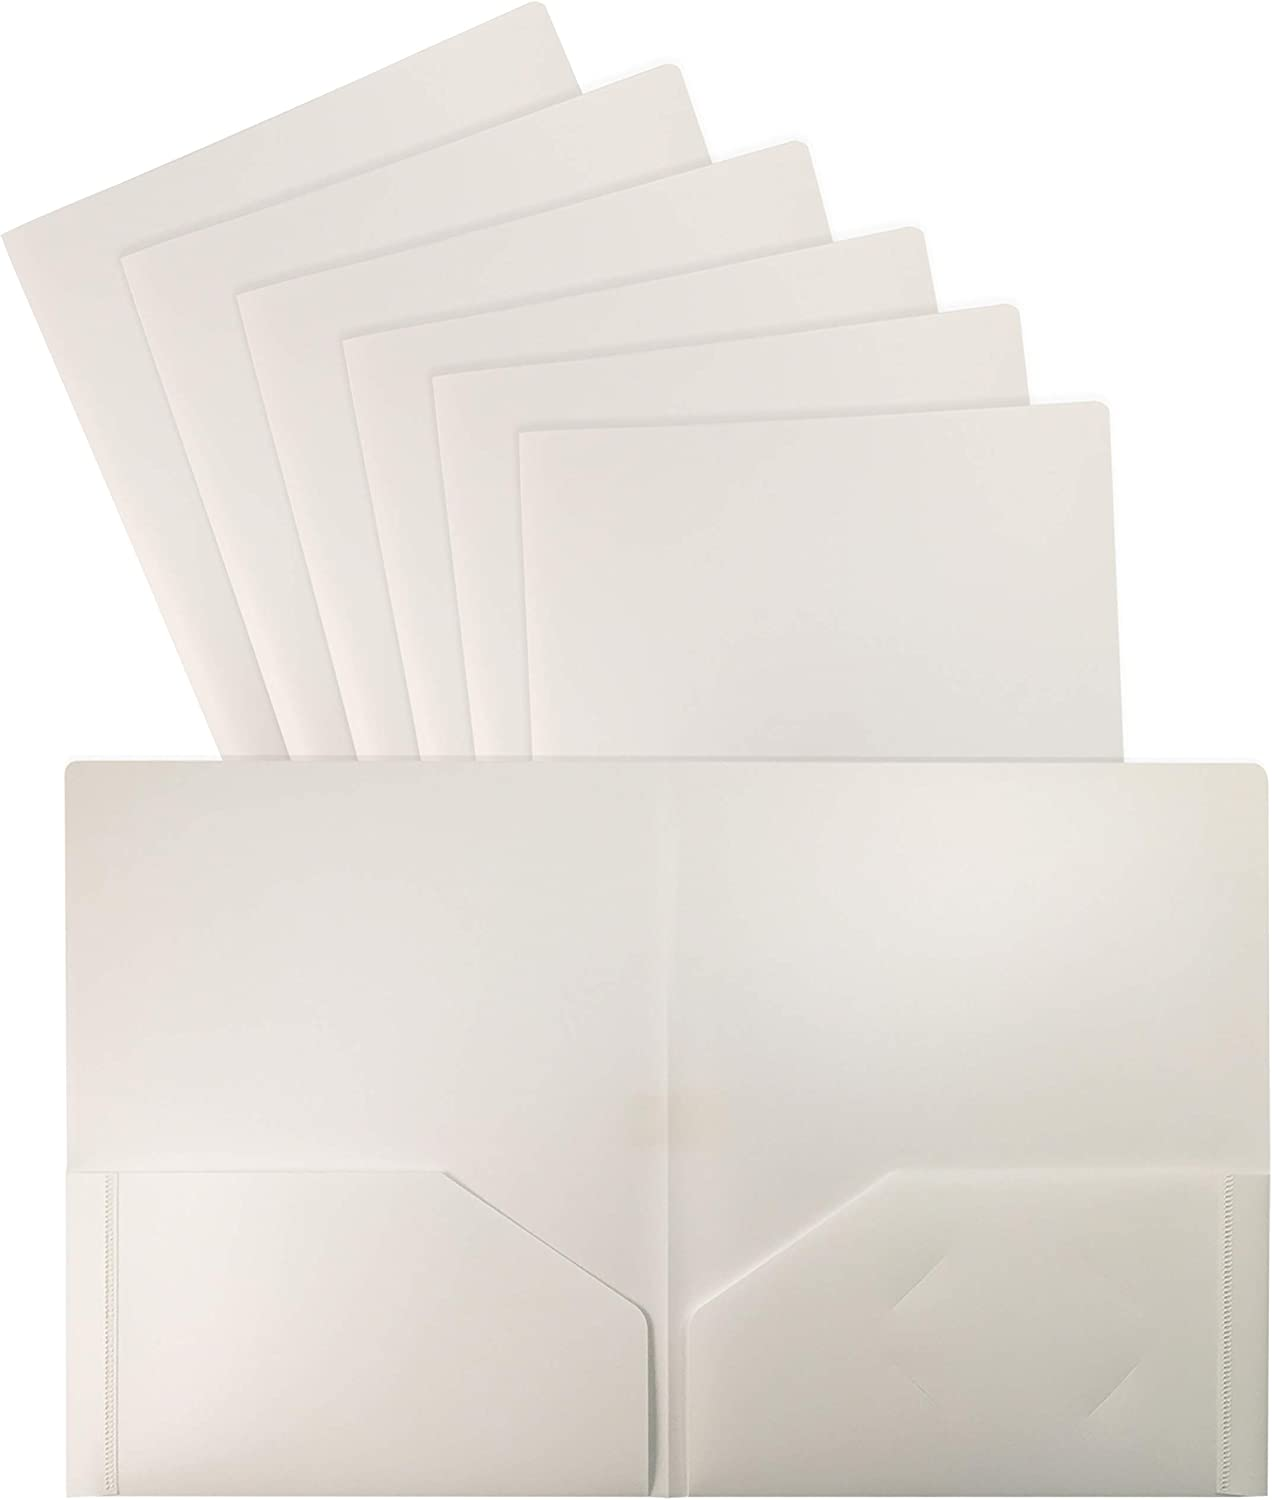 Heavyweight White Plastic 2 Pocket Portfolio Folder, 24 Pack, Letter Size Poly Folders by Better Office Products, 24 Pack, White